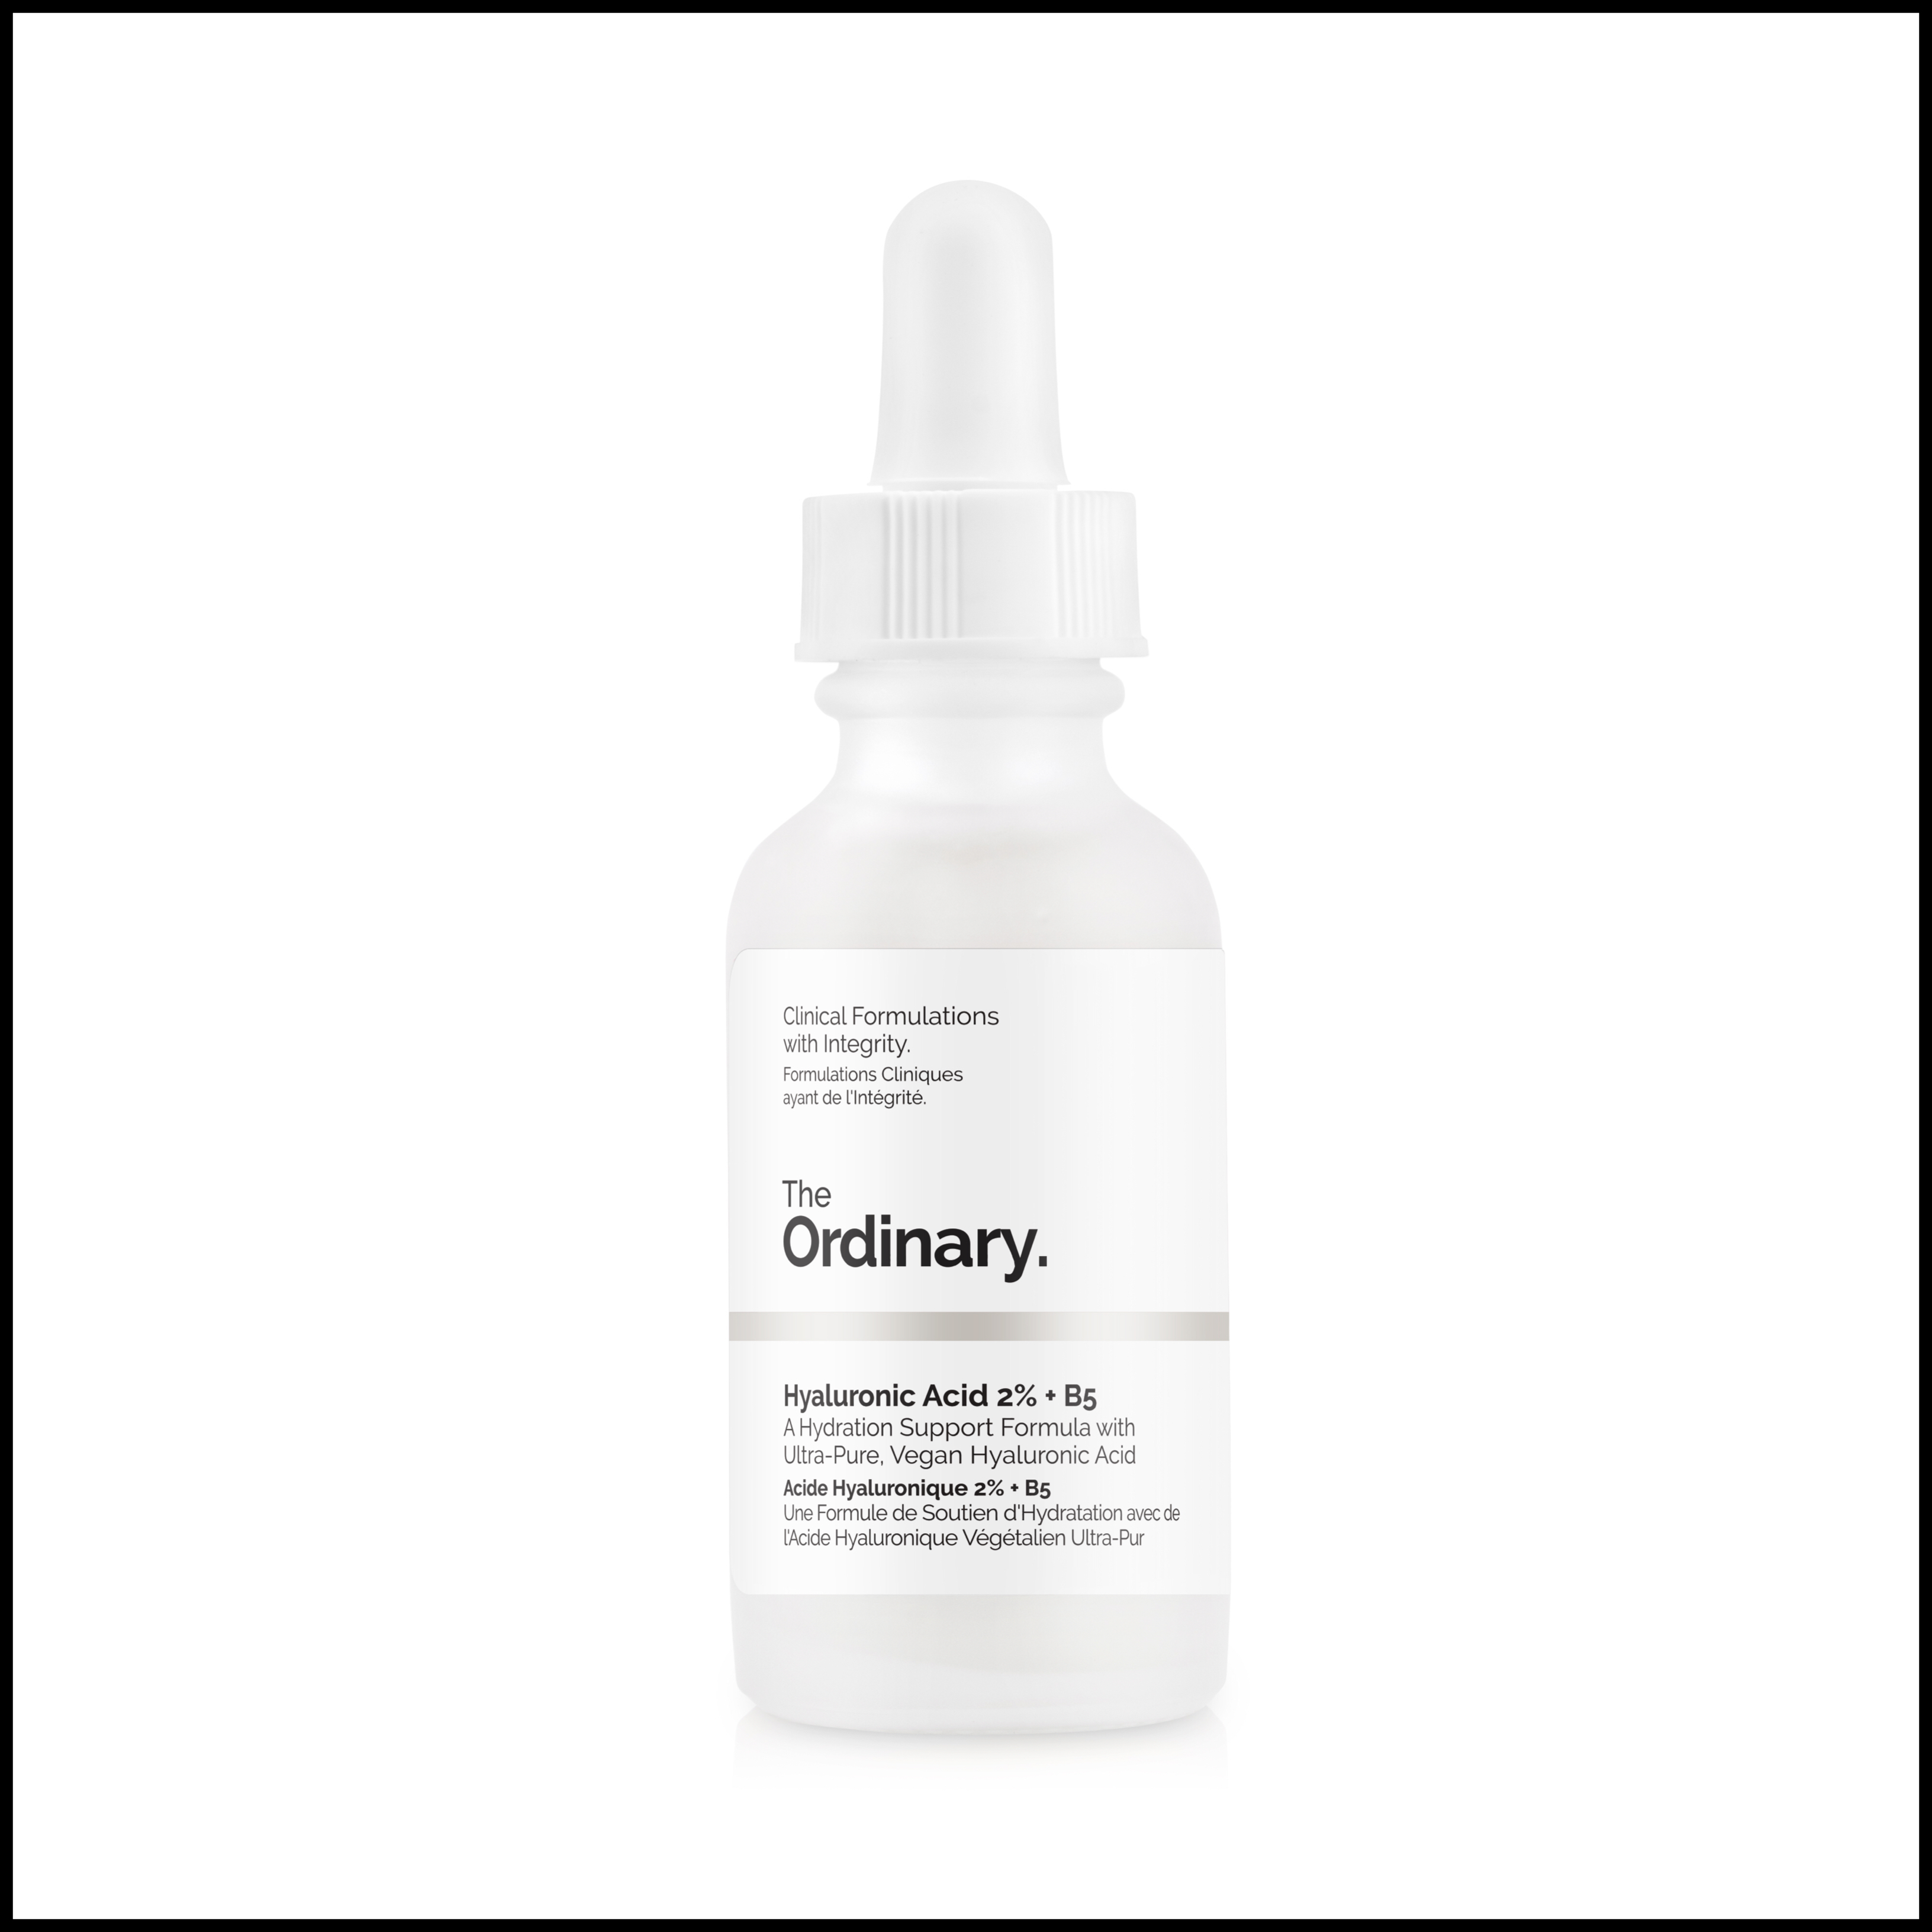 The Ordinary – The Complete 27 Product Review | DETAIL